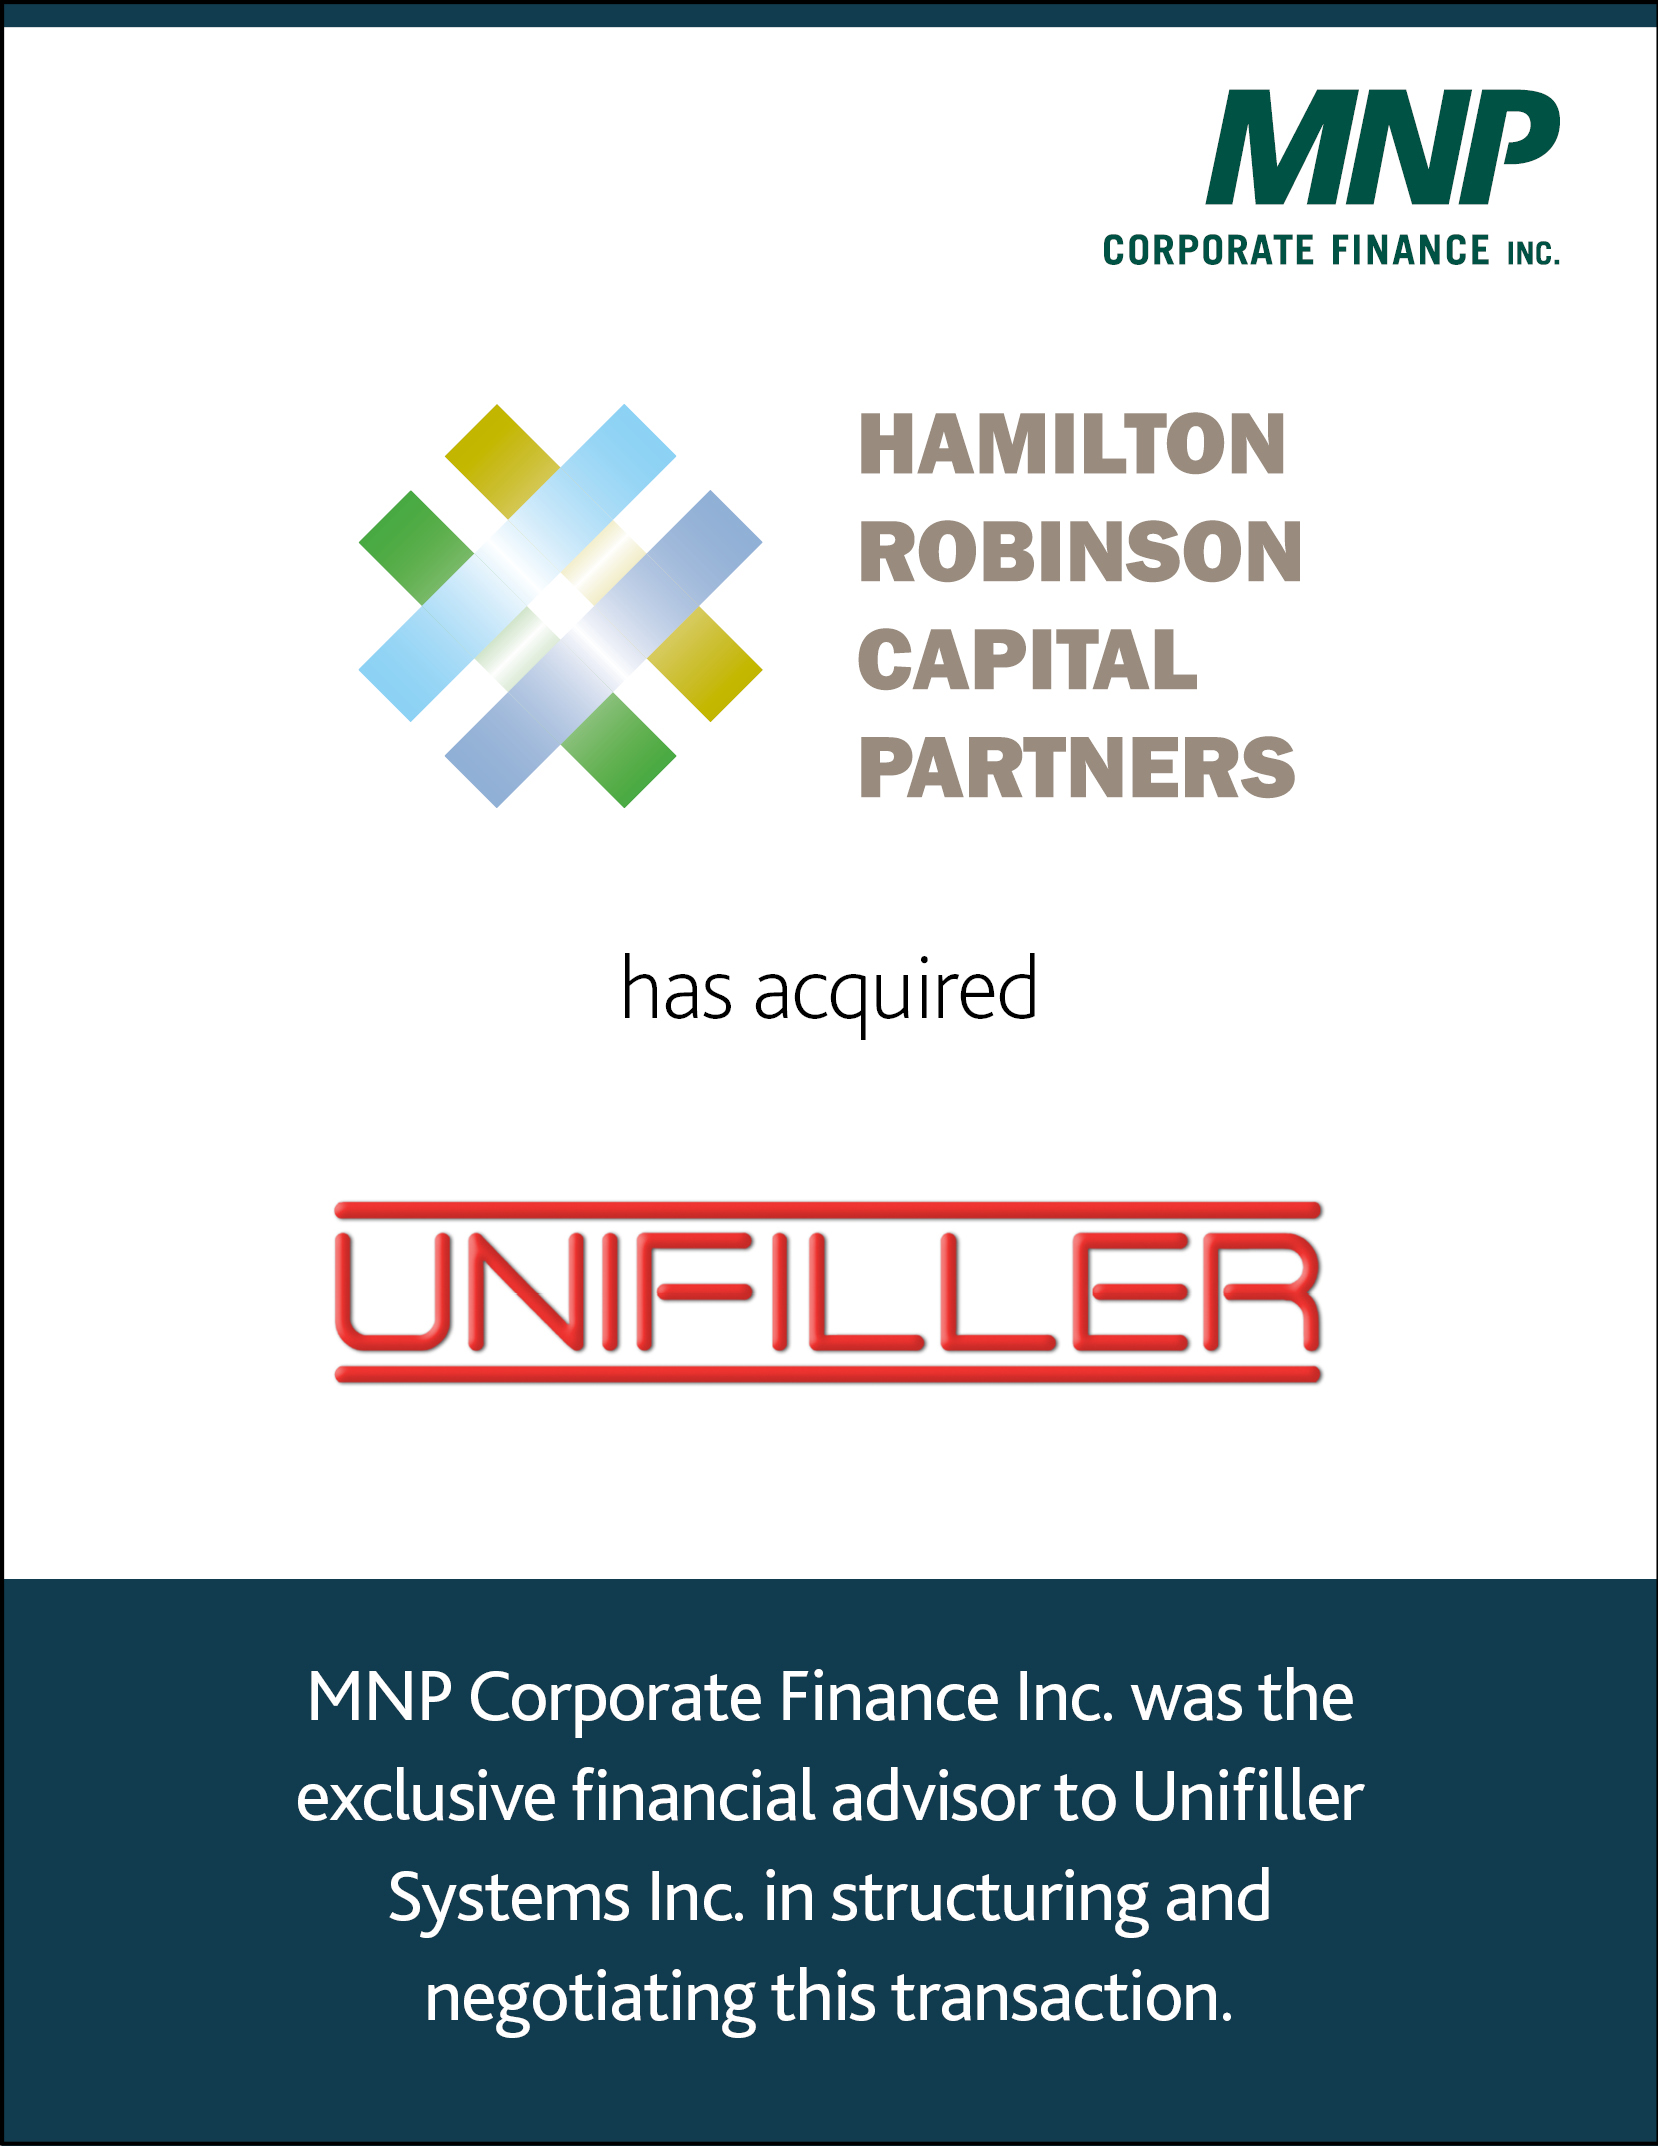 Hamilton Robinson Capital Partners LLC has acquired Unifiller Systems Inc.